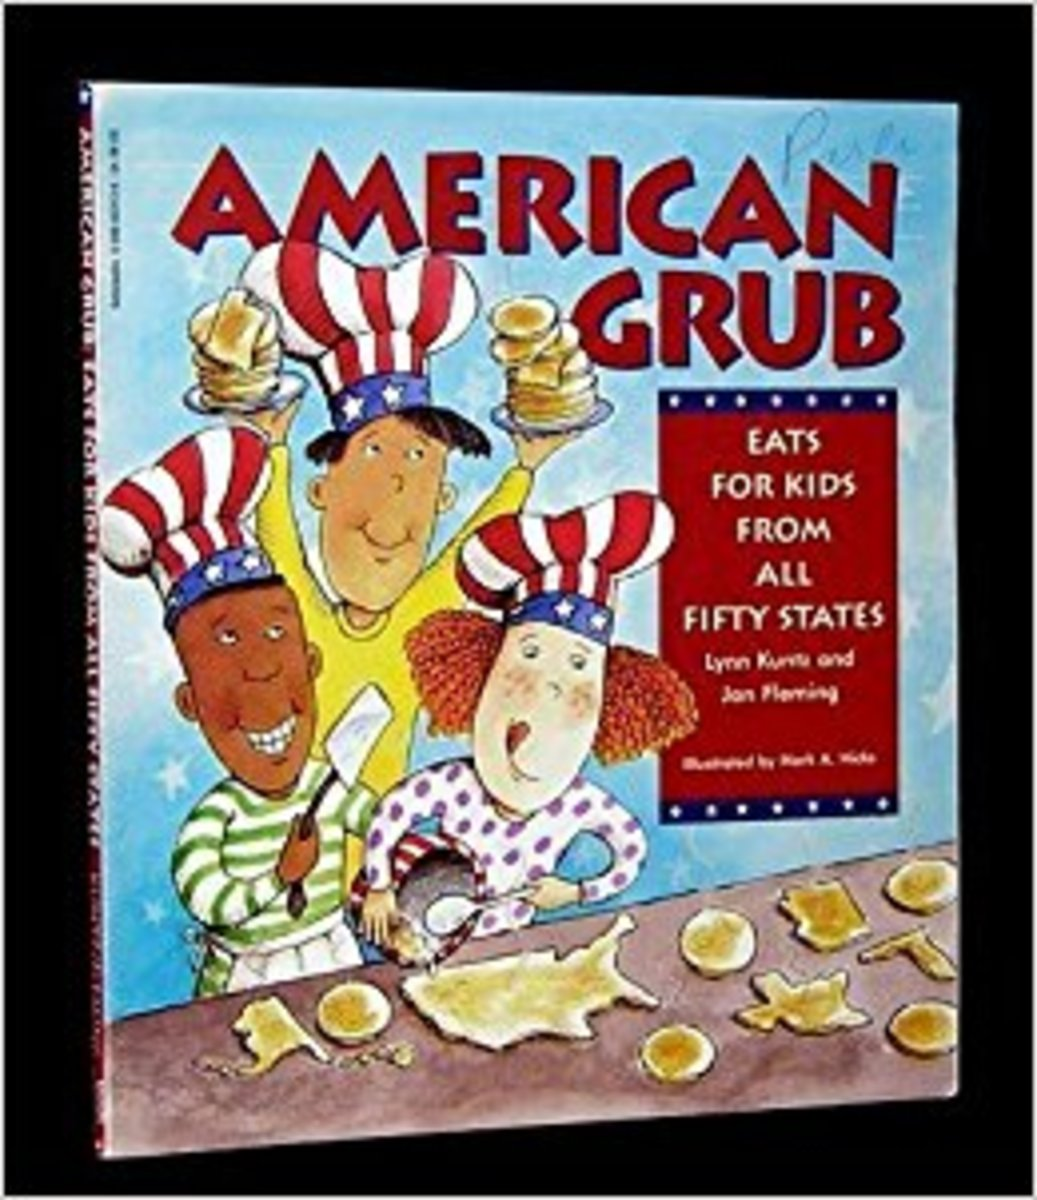 American Grub - Eats for Kids from All Fifty States by Lynn Kuntz - Book image is from amazon.com.